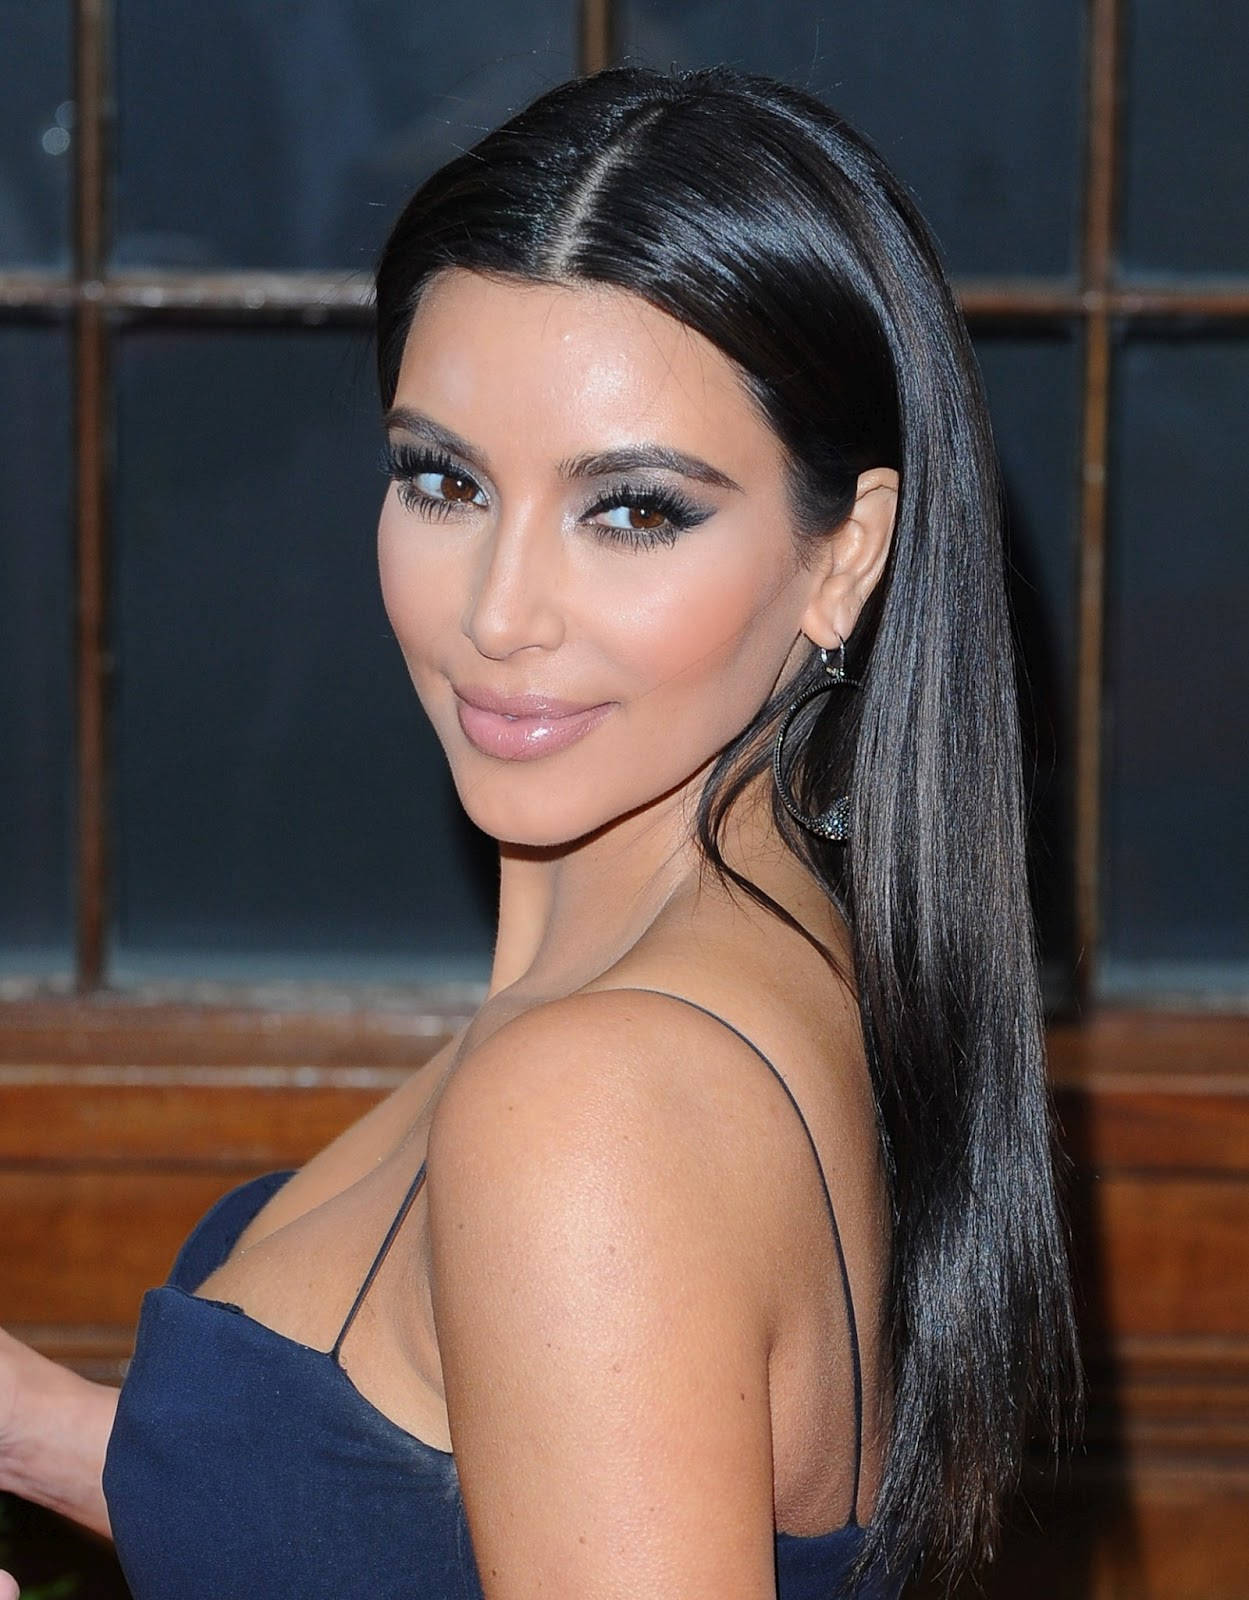 Kim Kardashian in Hot Photos in Blue Sleeveless Dress